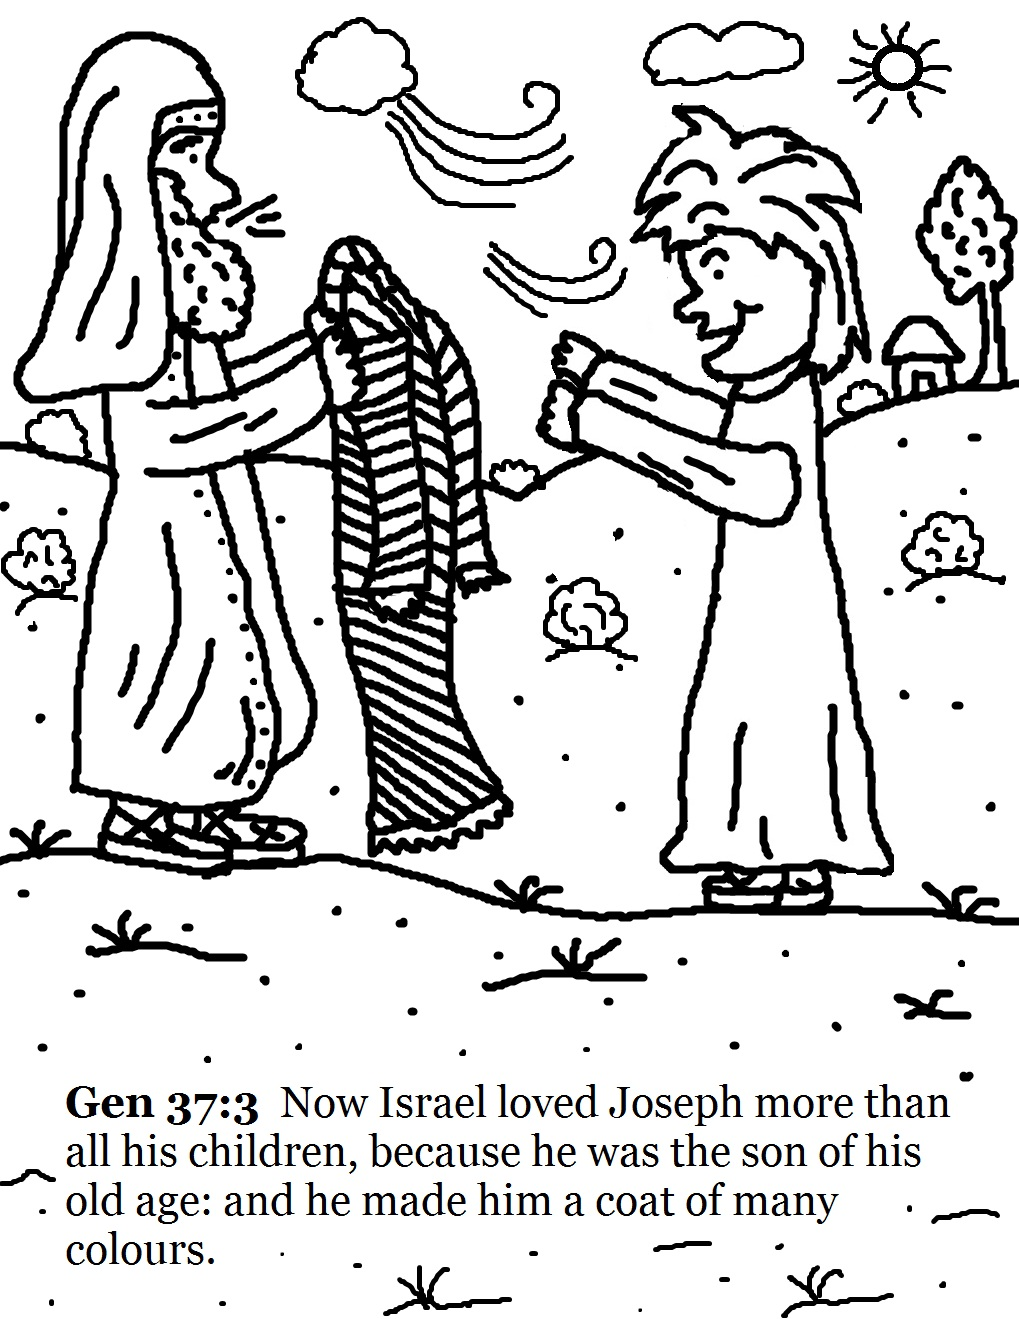 Coloring Pages Joseph Bible Coloring Pages josephs coat of many colors coloring pages israel giving joseph a coat